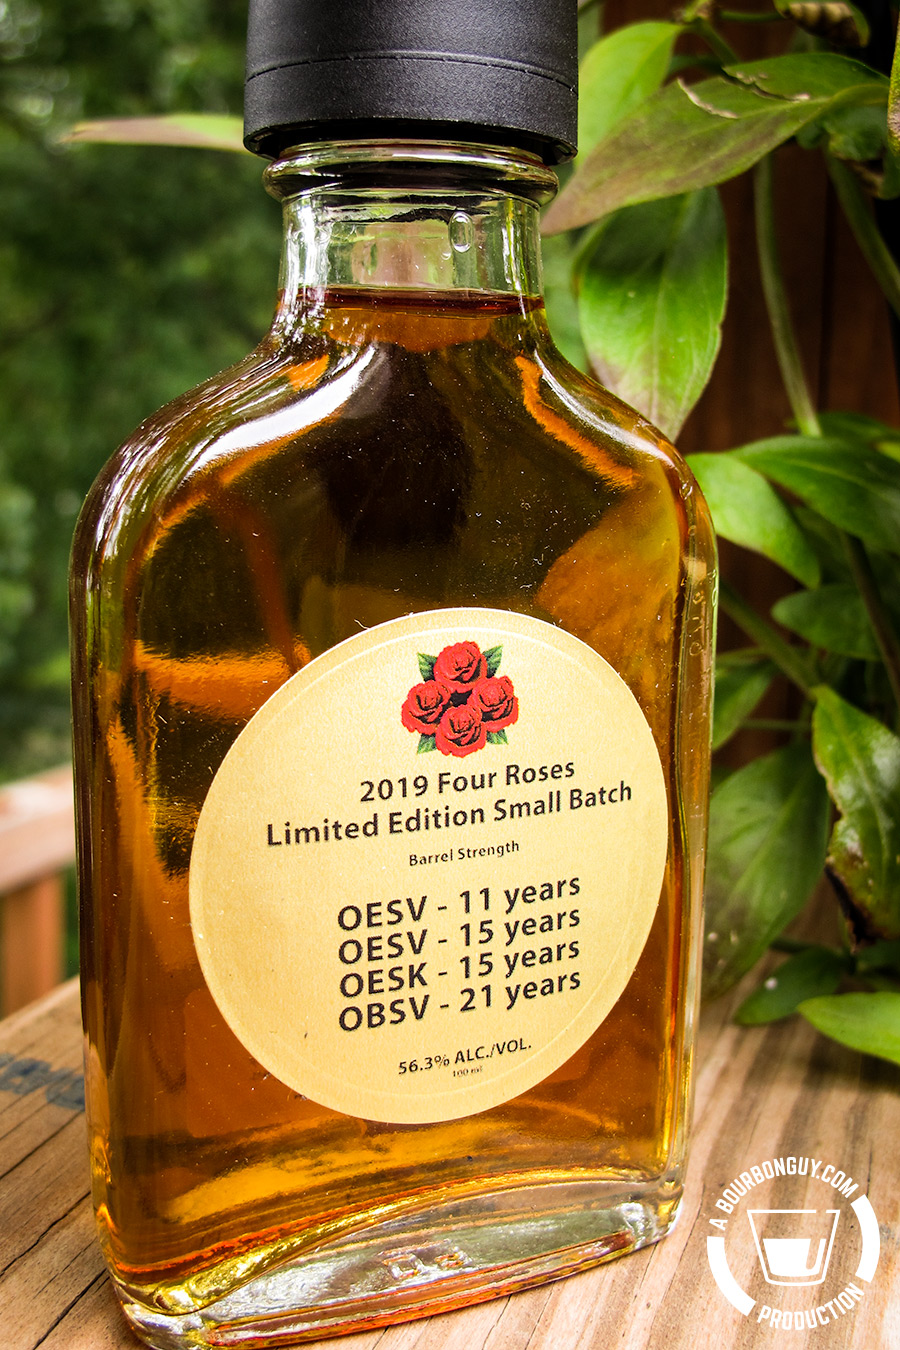 IMAGE: 100 mL sample bottle of the 2019 Four Roses Limited Edition Small Batch. Copy on the label states that it is Barrel Strength and is made up of four bourbons (OESV - 11 year old, OESV - 15 year old, OESK - 15 years old and OBSV - 21 years old.).